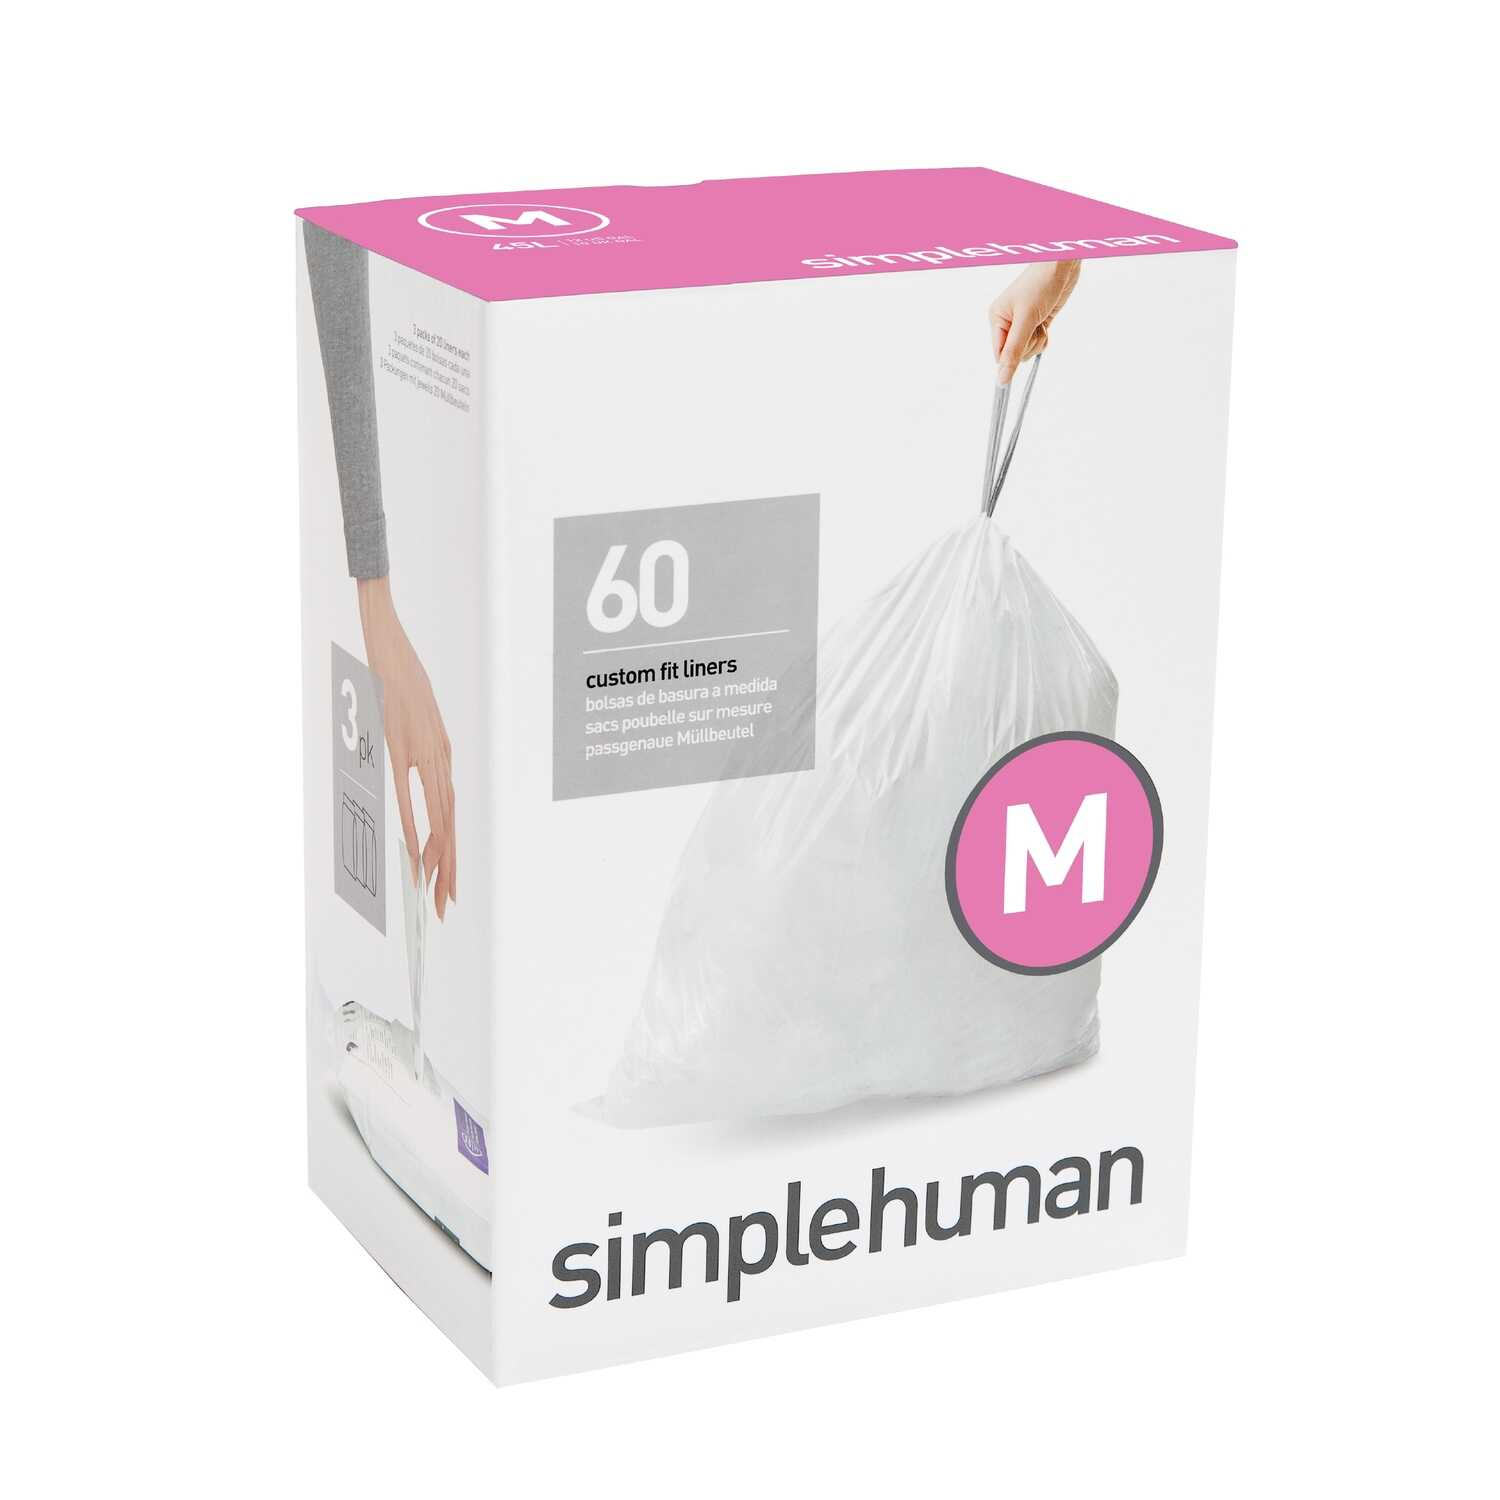 simplehuman  Custom Fit Code M  12 gal. Trash Bag Liner  Drawstring  60 pk